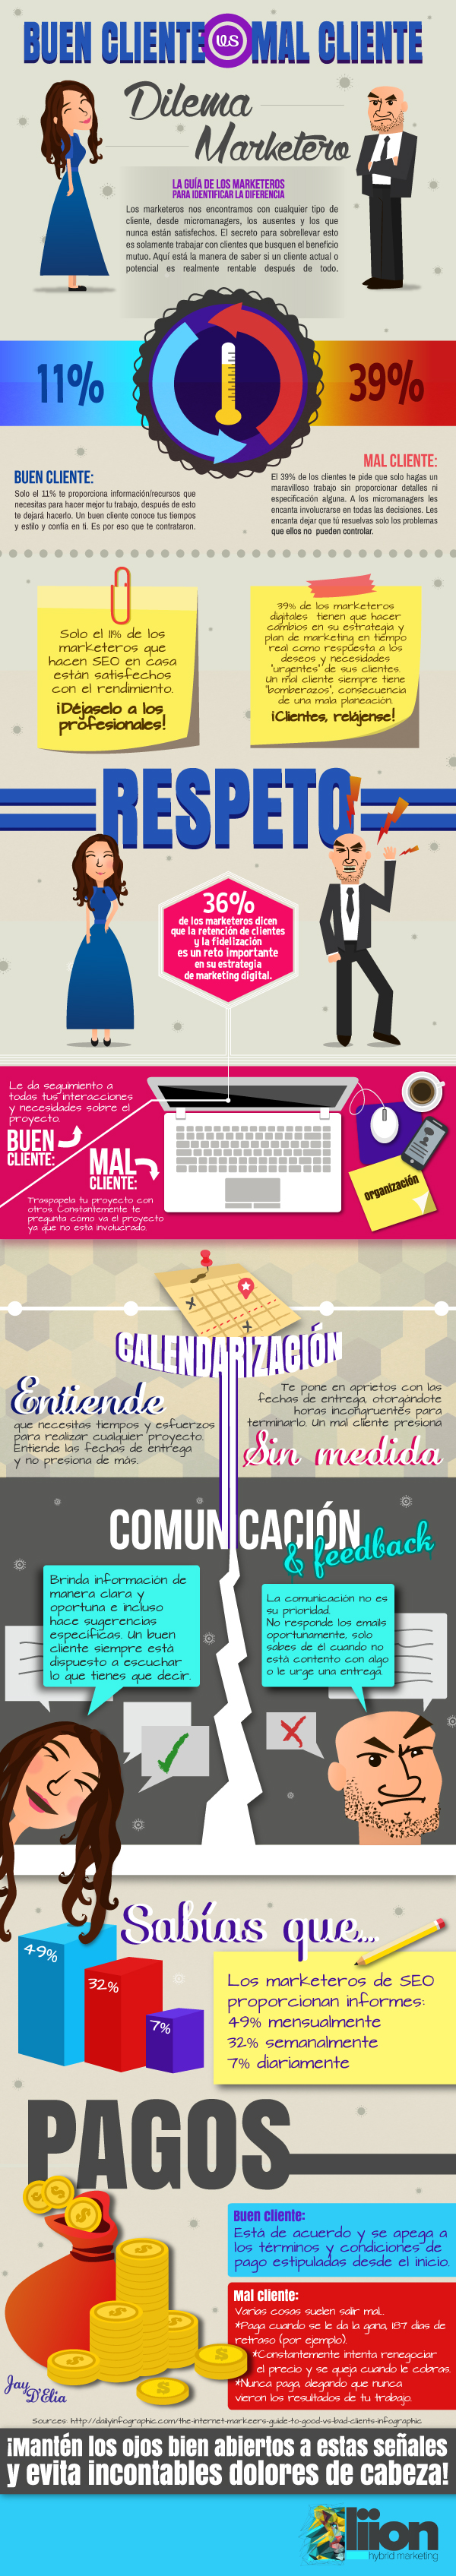 Dilema marketero: Buen cliente vs mal cliente